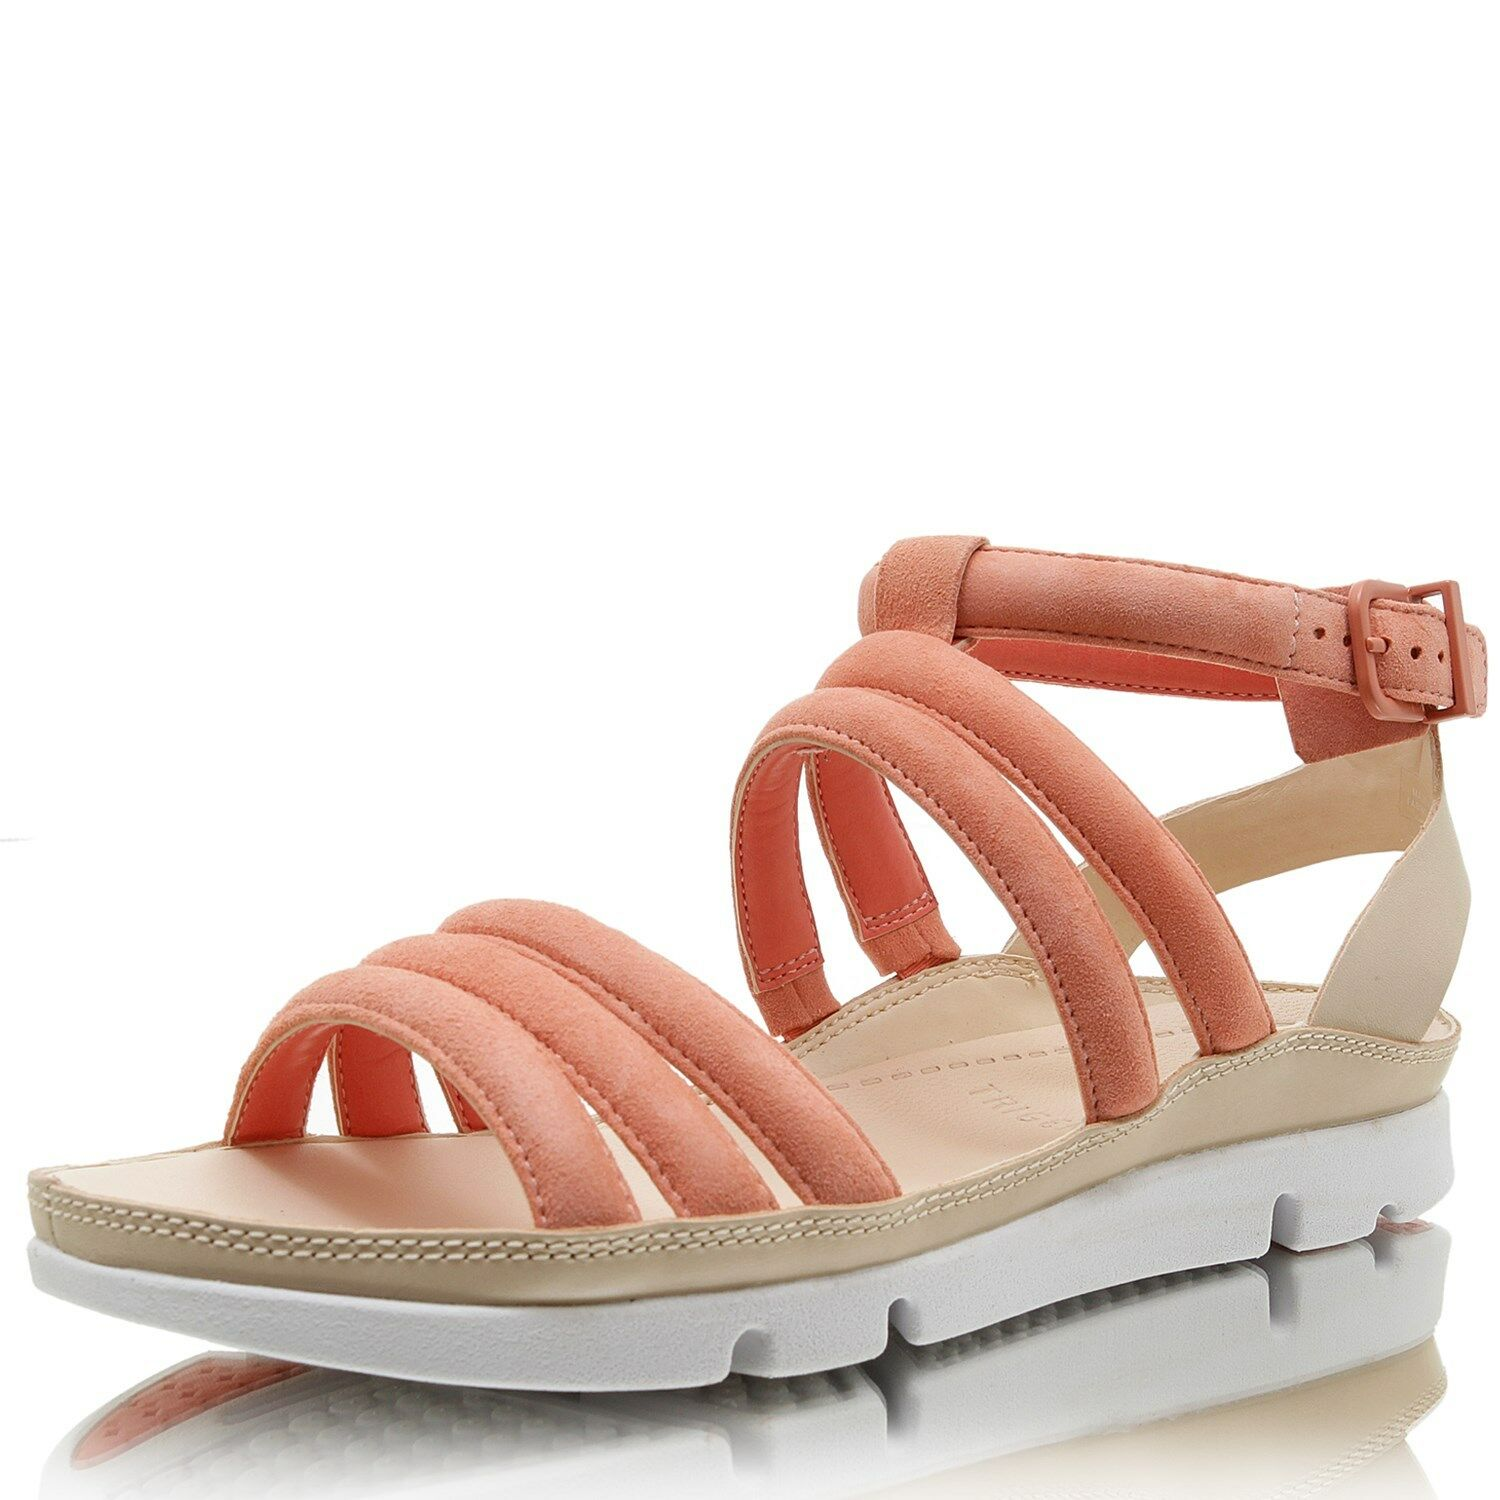 NEW CLARKS Tri Nyla Coral Suede Sandals - UK SIZE 5.5D